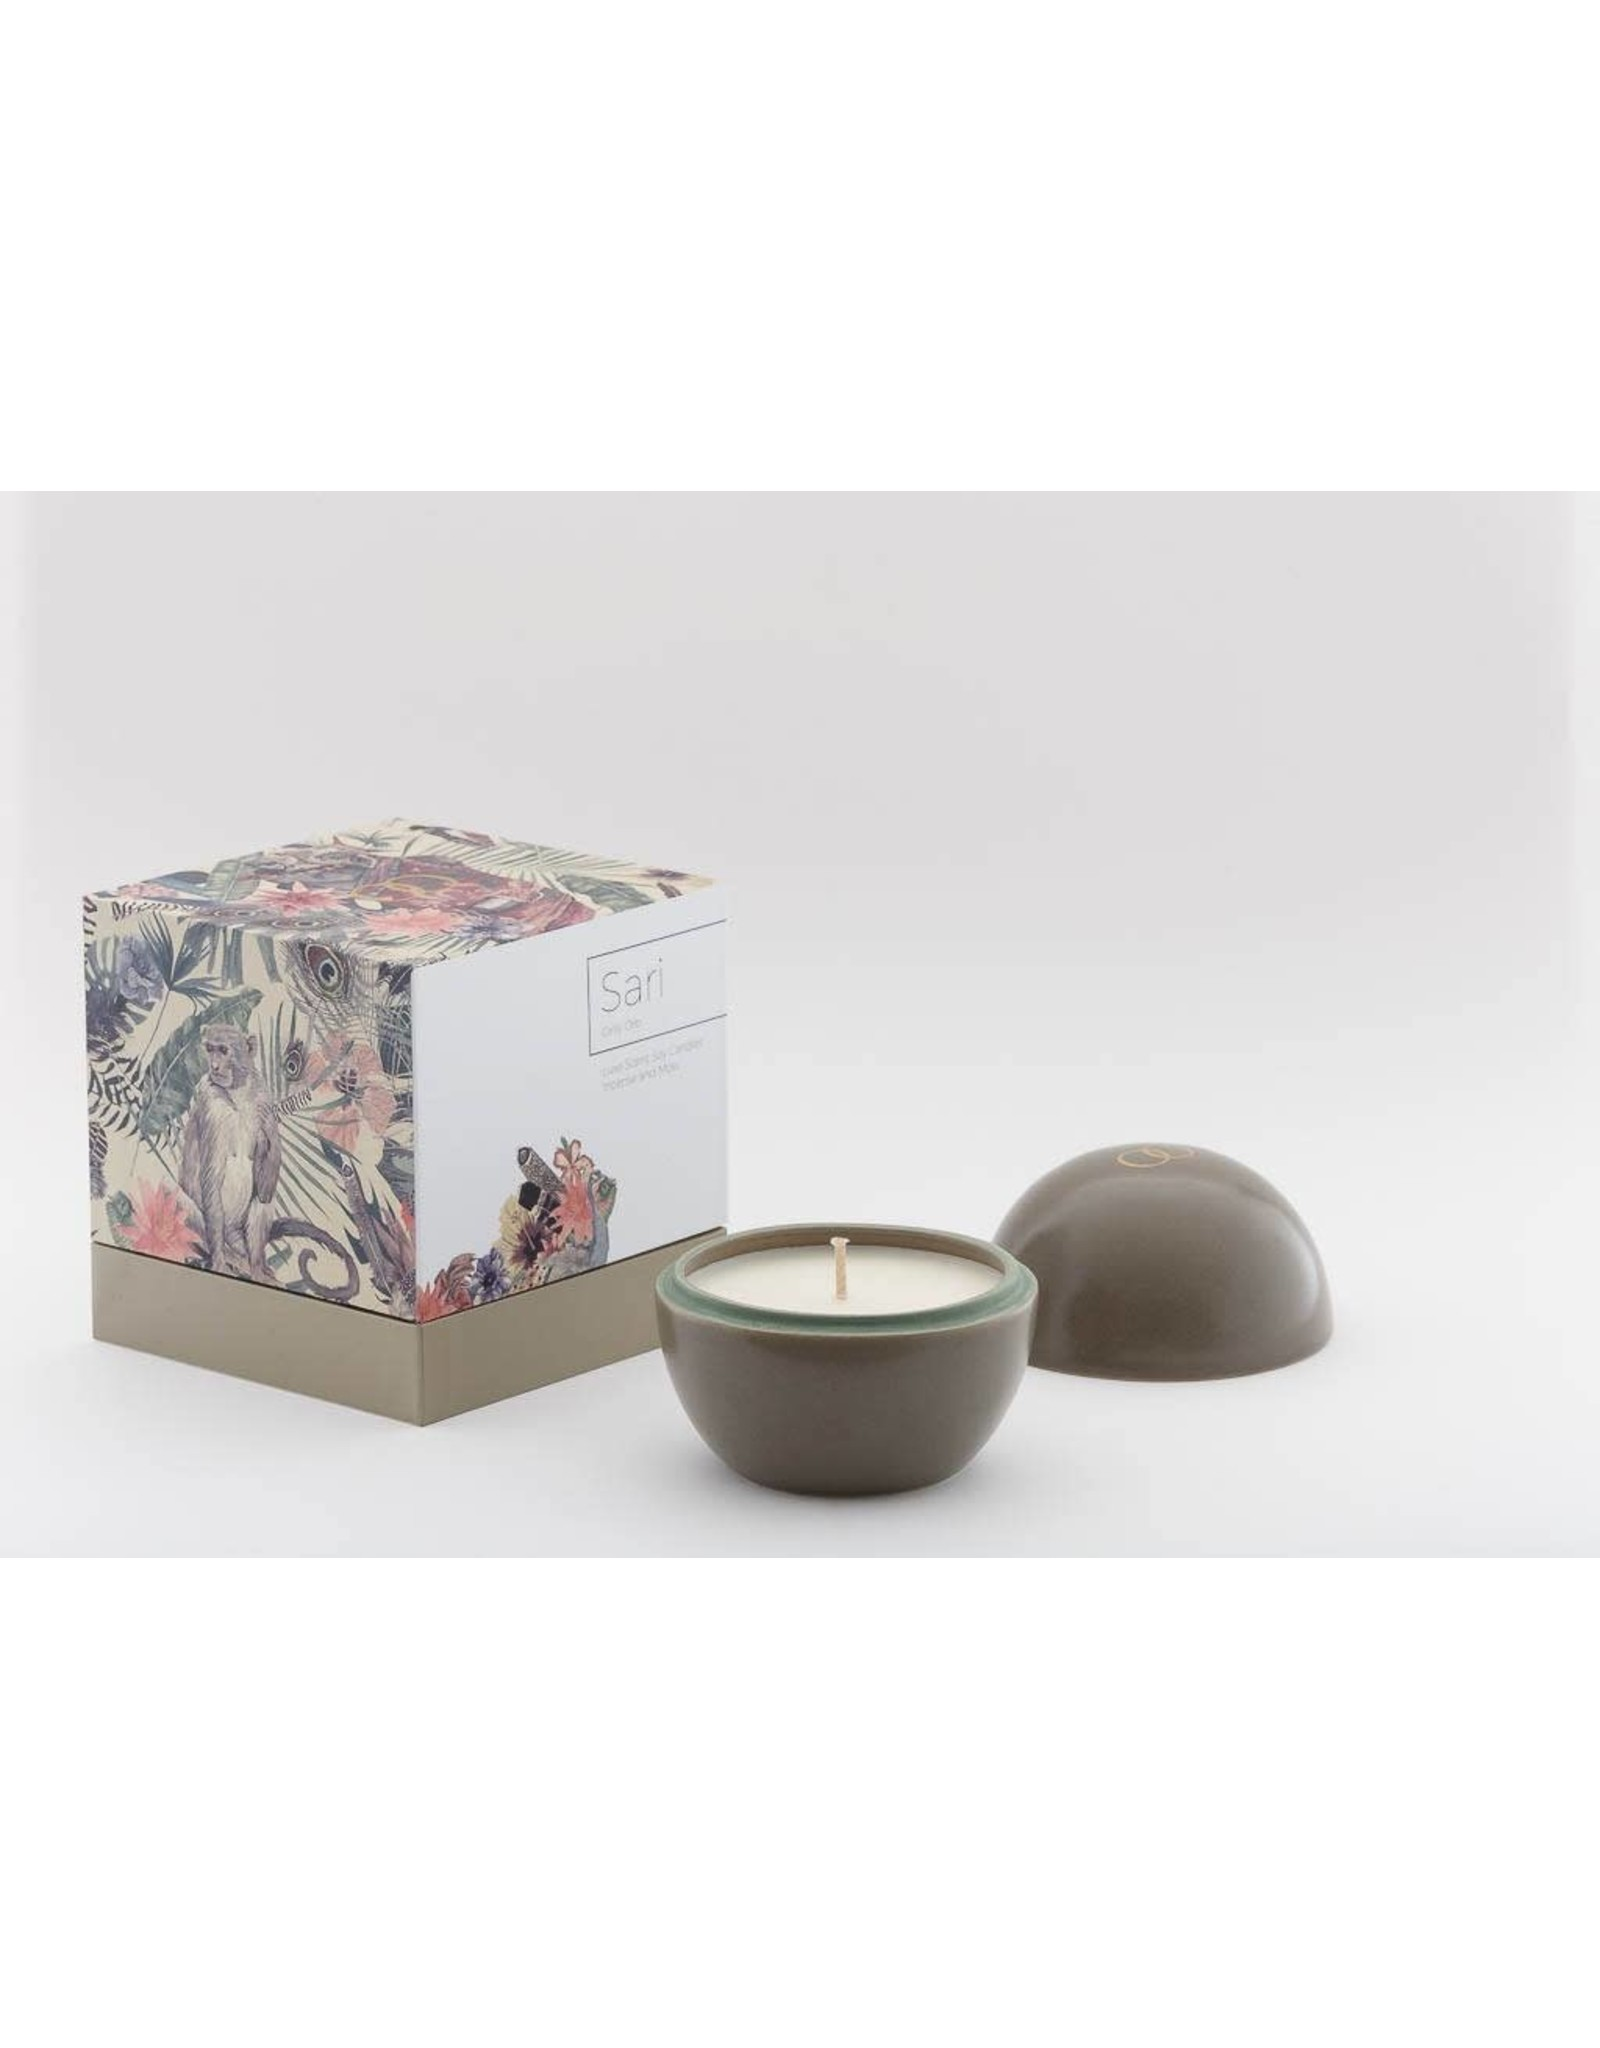 Only Orb CERAMIC ORB and ASRI